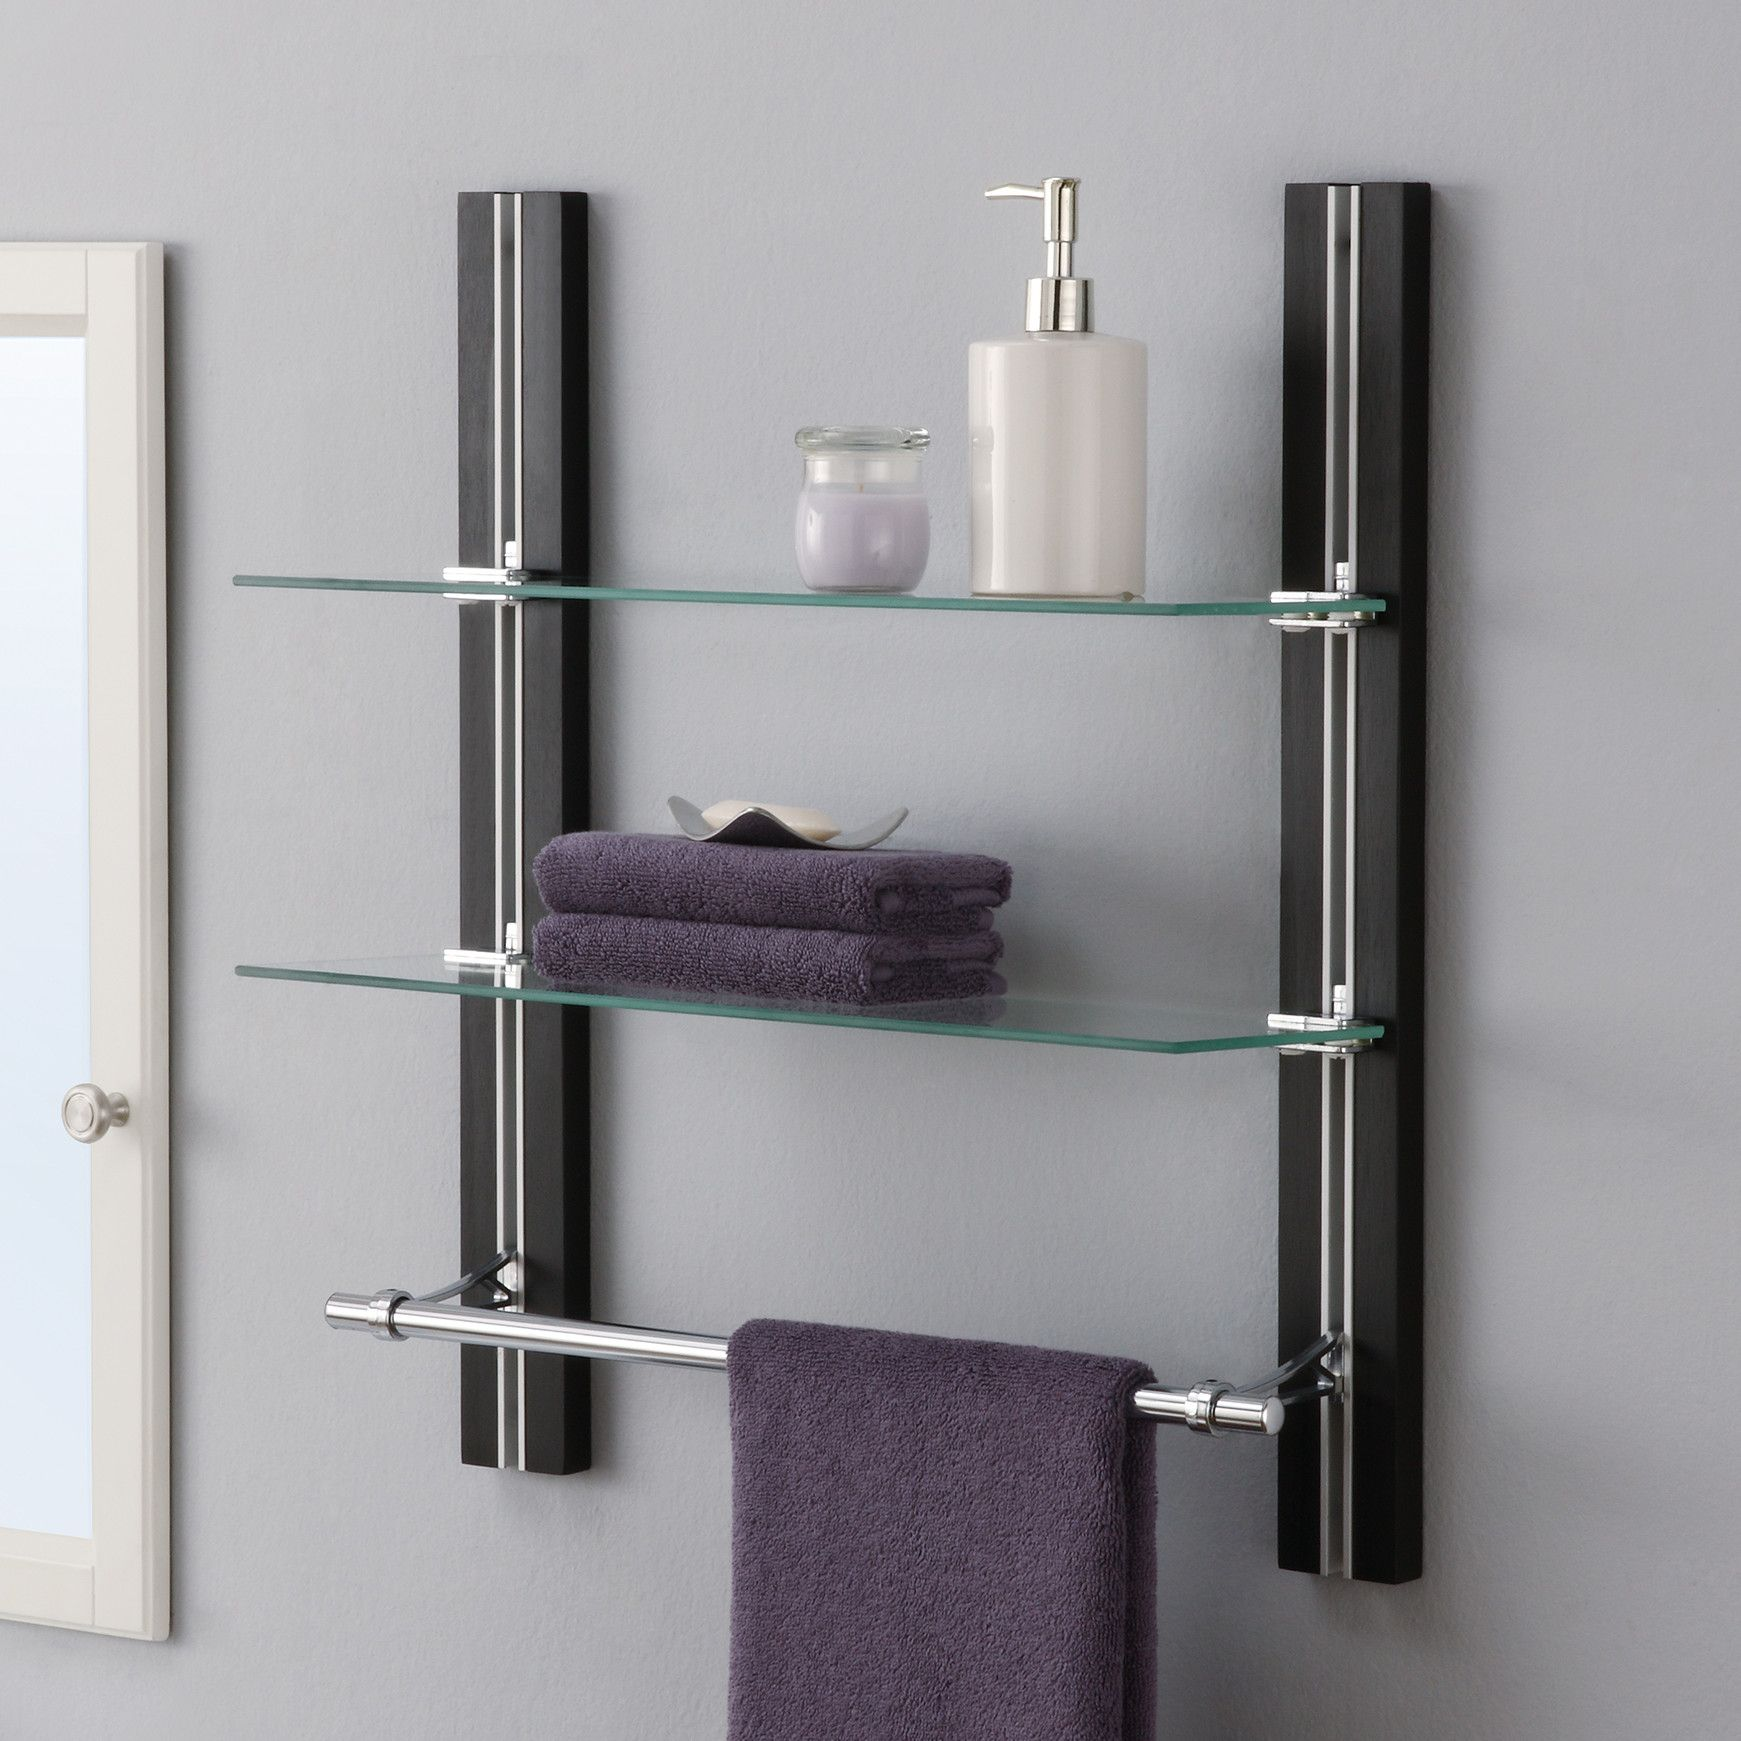 OIA W X H Two Tier Bathroom Shelf With Towel Bar - Bathroom shelving ideas for towels for small bathroom ideas